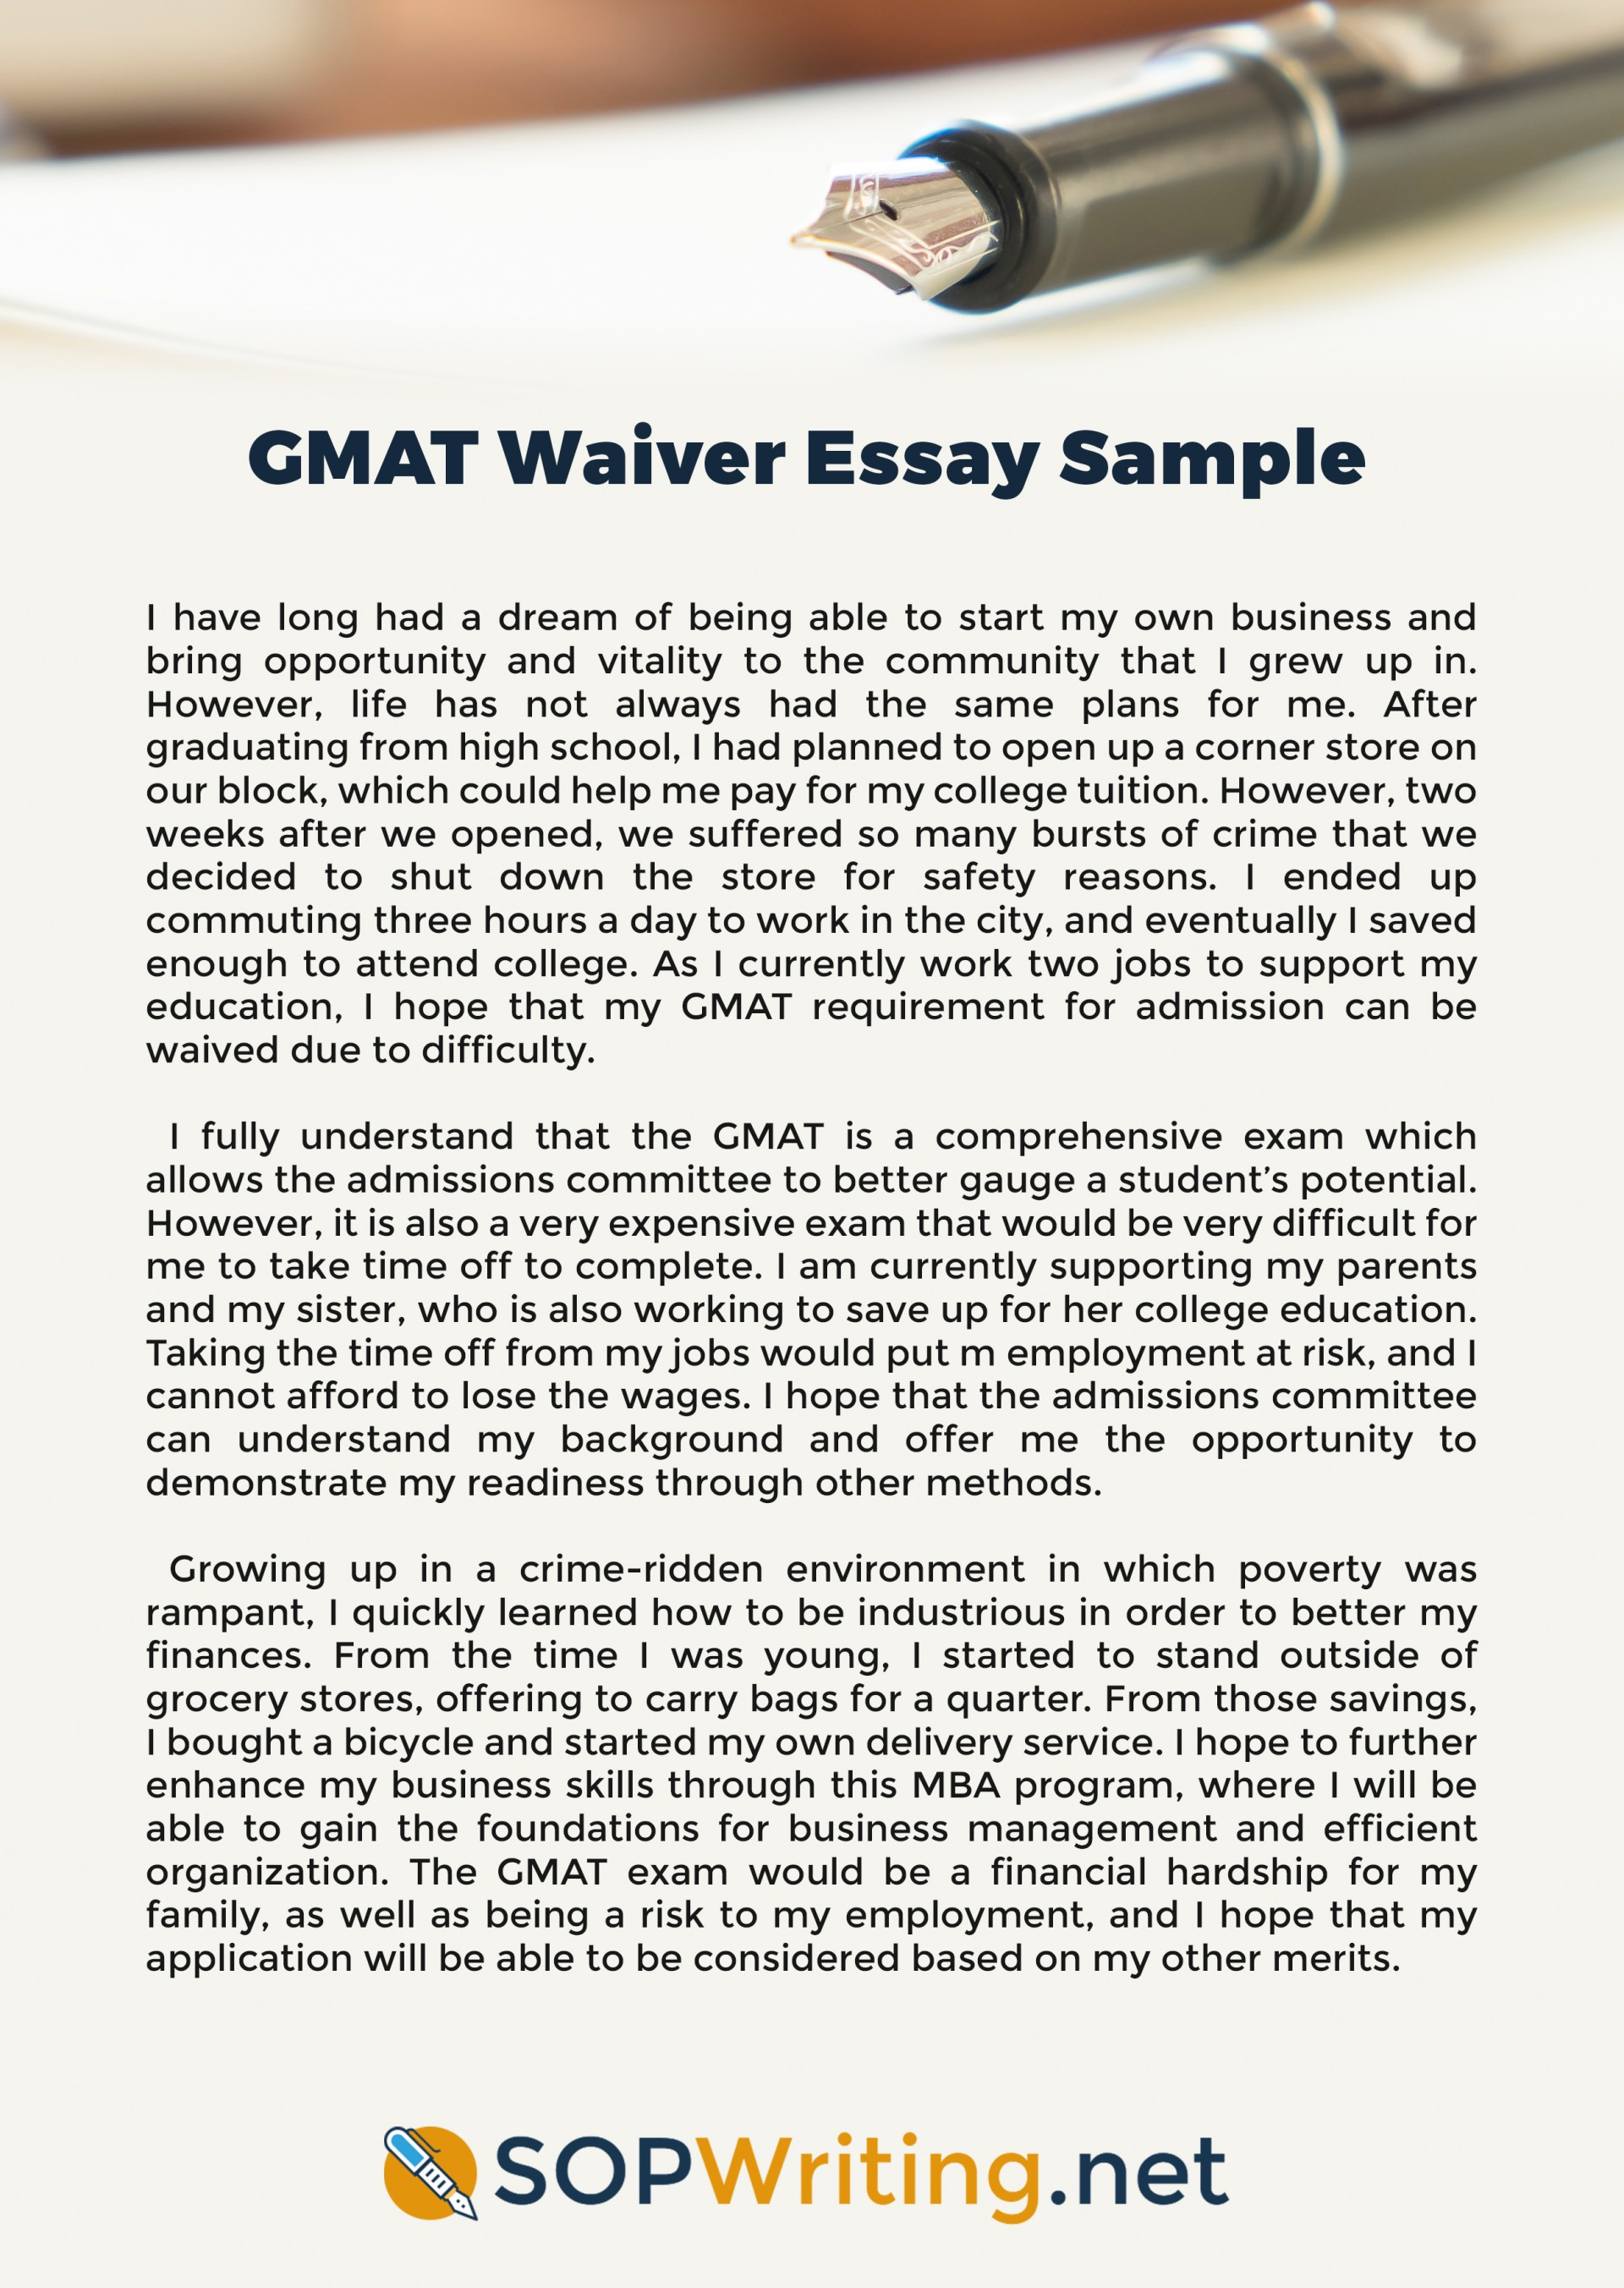 019 Essay Example Gmat Writing Dispatcher Resume Examples Best Format Waiver S Awa Samples Pdf Sample Topics Issue Analysis Of An Questions Application Argument Astounding Practice Prompts 1920